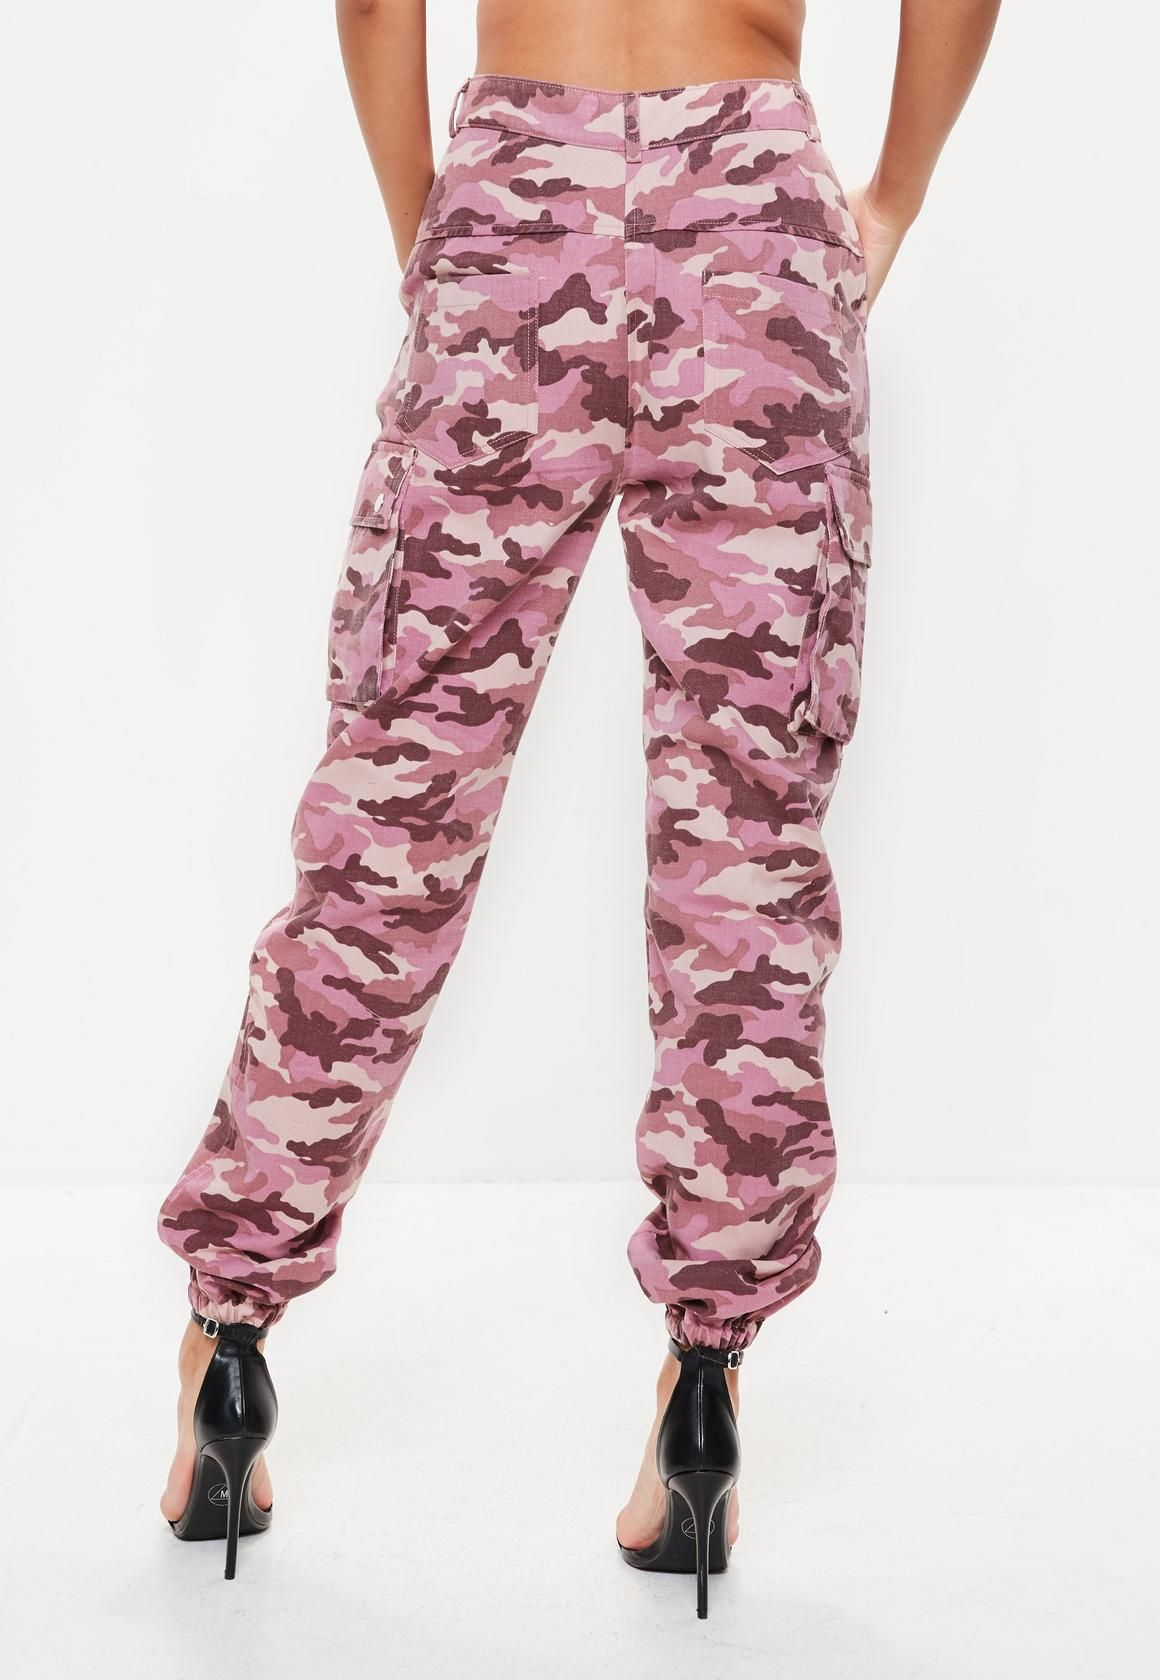 604704cba11b5 Missguided - Petite Pink Camo Printed Cargo Trousers   Autdorz in ...